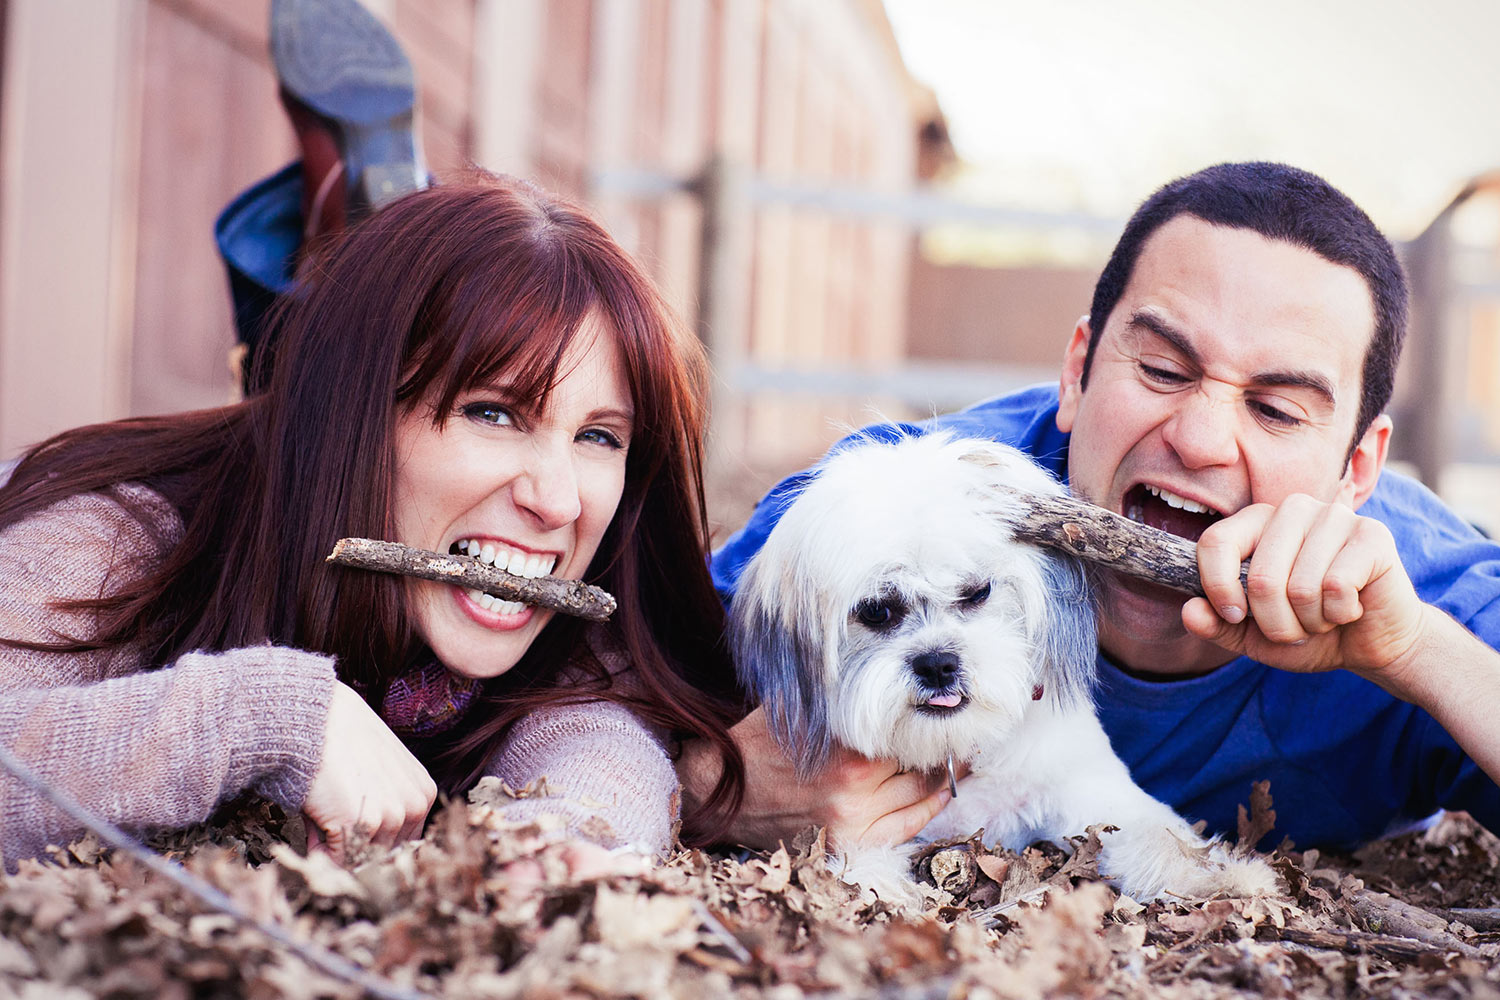 Cute Los Angeles engagement photo of couple playing with their dog